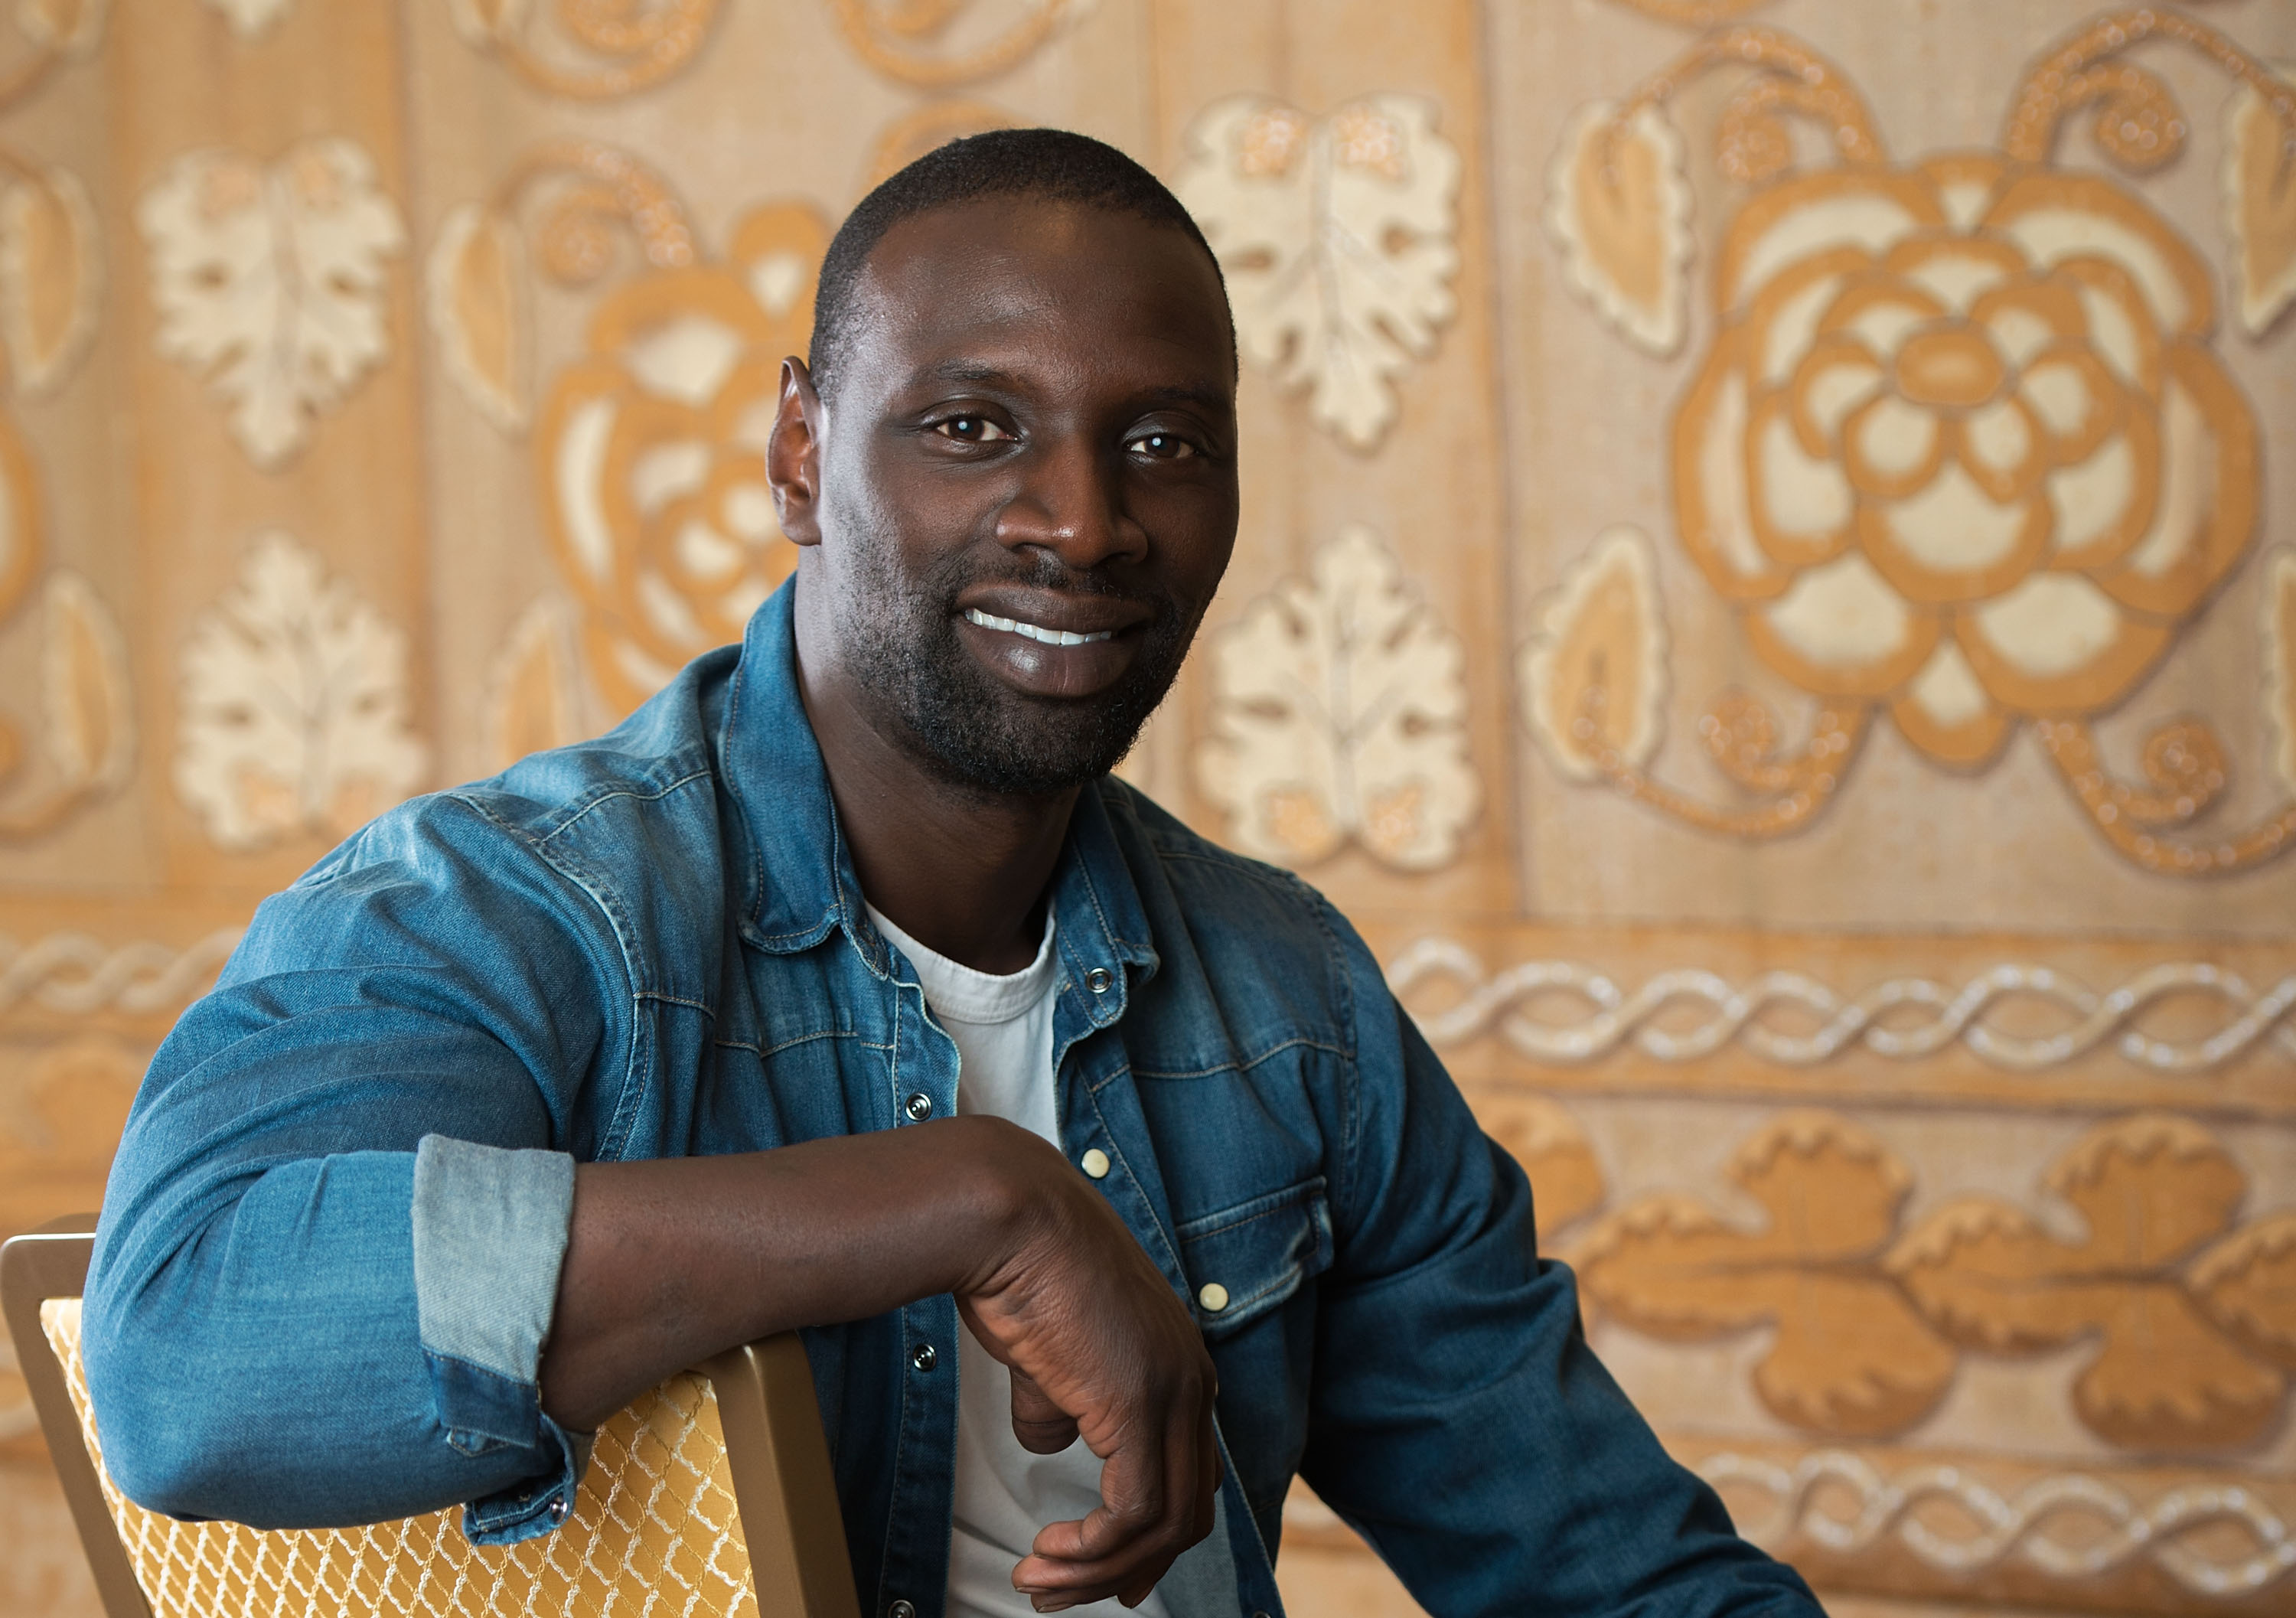 3000x2114 - Omar Sy Wallpapers 24